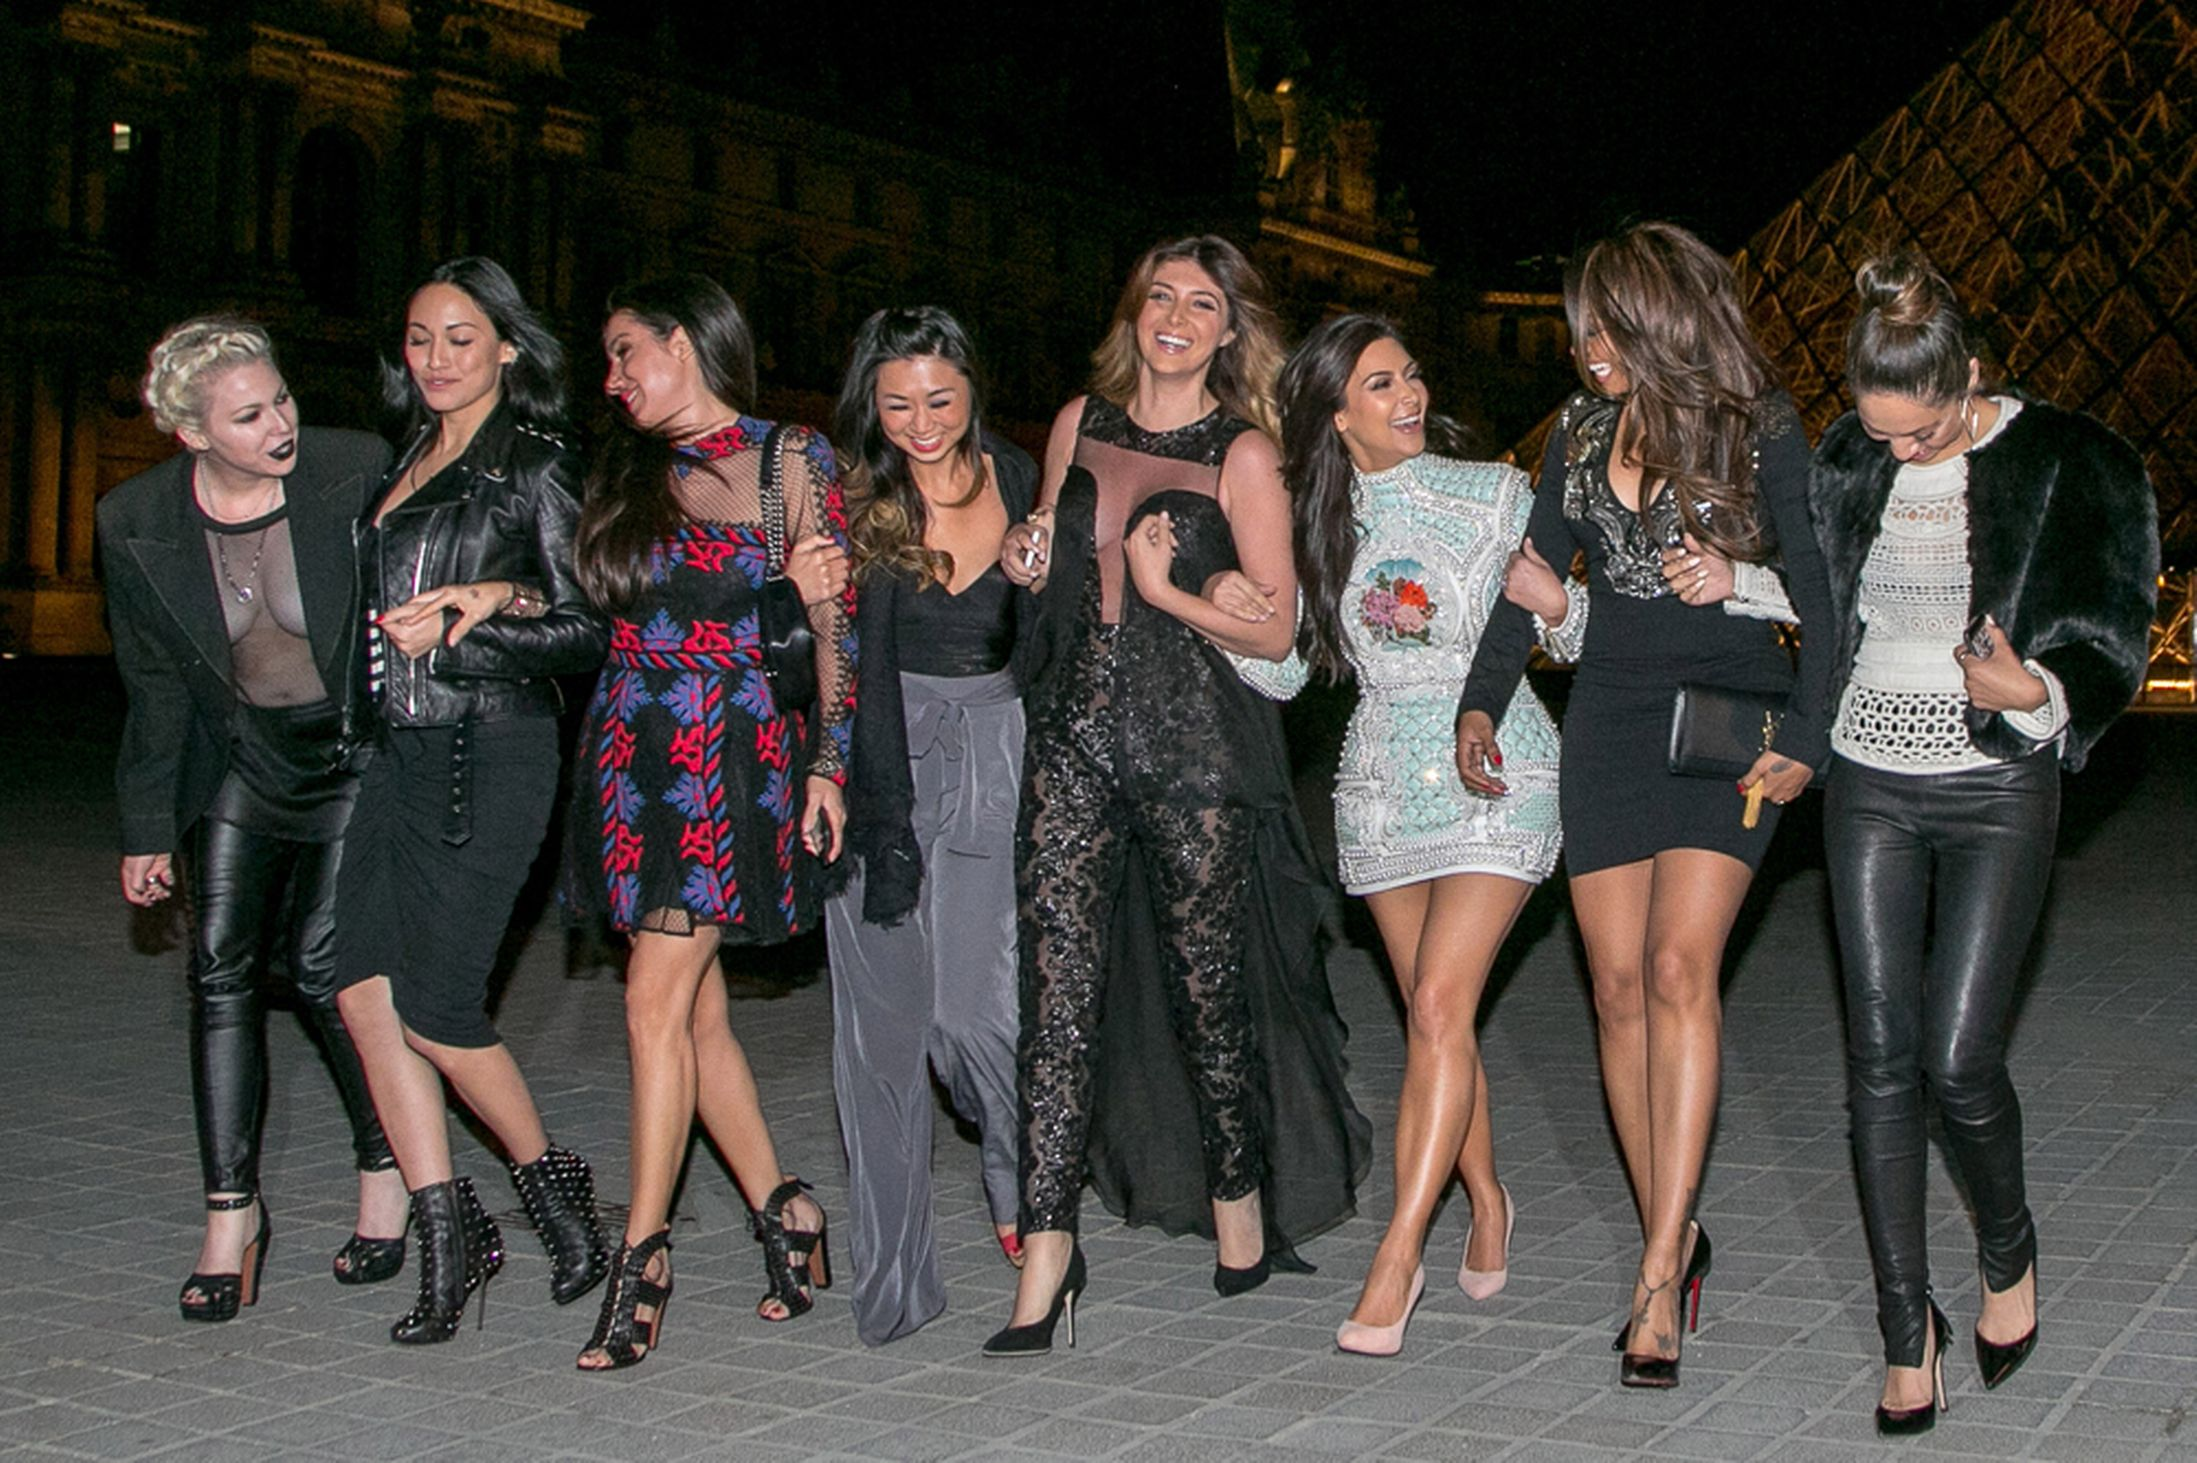 Kim-Kardashian-and-her-friends-are-seen-in-front-of-the-Louvre-museum